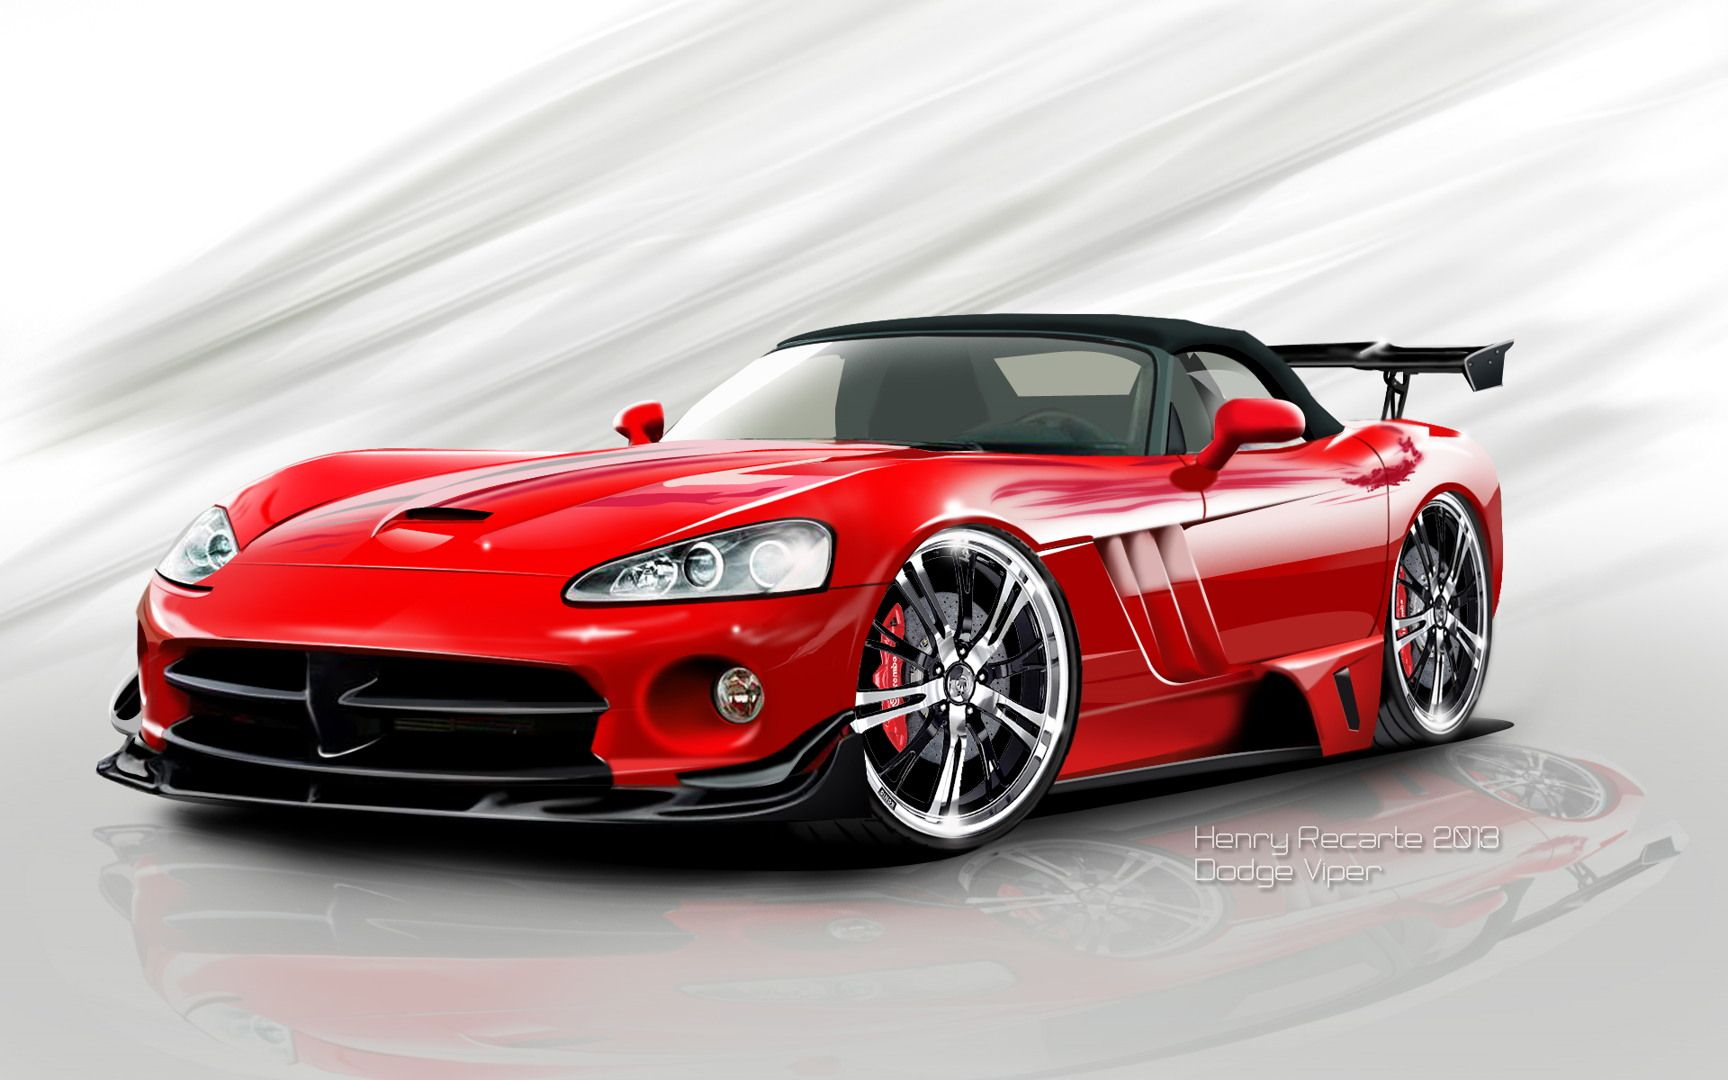 Dodge Viper Tuning 1728x1080 Download Hd Wallpaper Wallpapertip